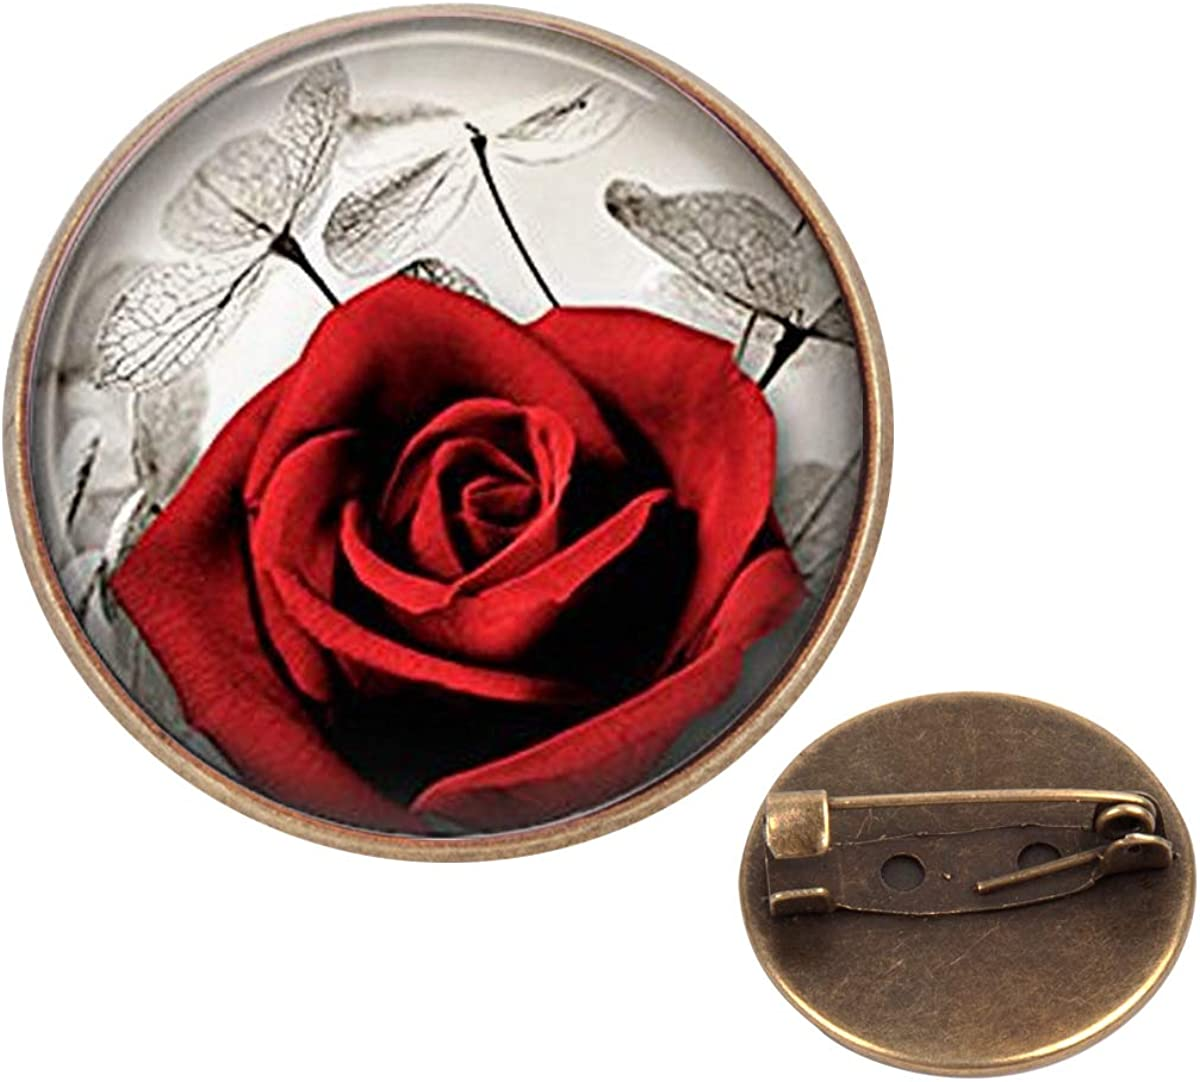 Pinback Buttons Badges Pins Red Rose Flower Lapel Pin Brooch Clip Trendy Accessory Jacket T-Shirt Bag Hat Shoe